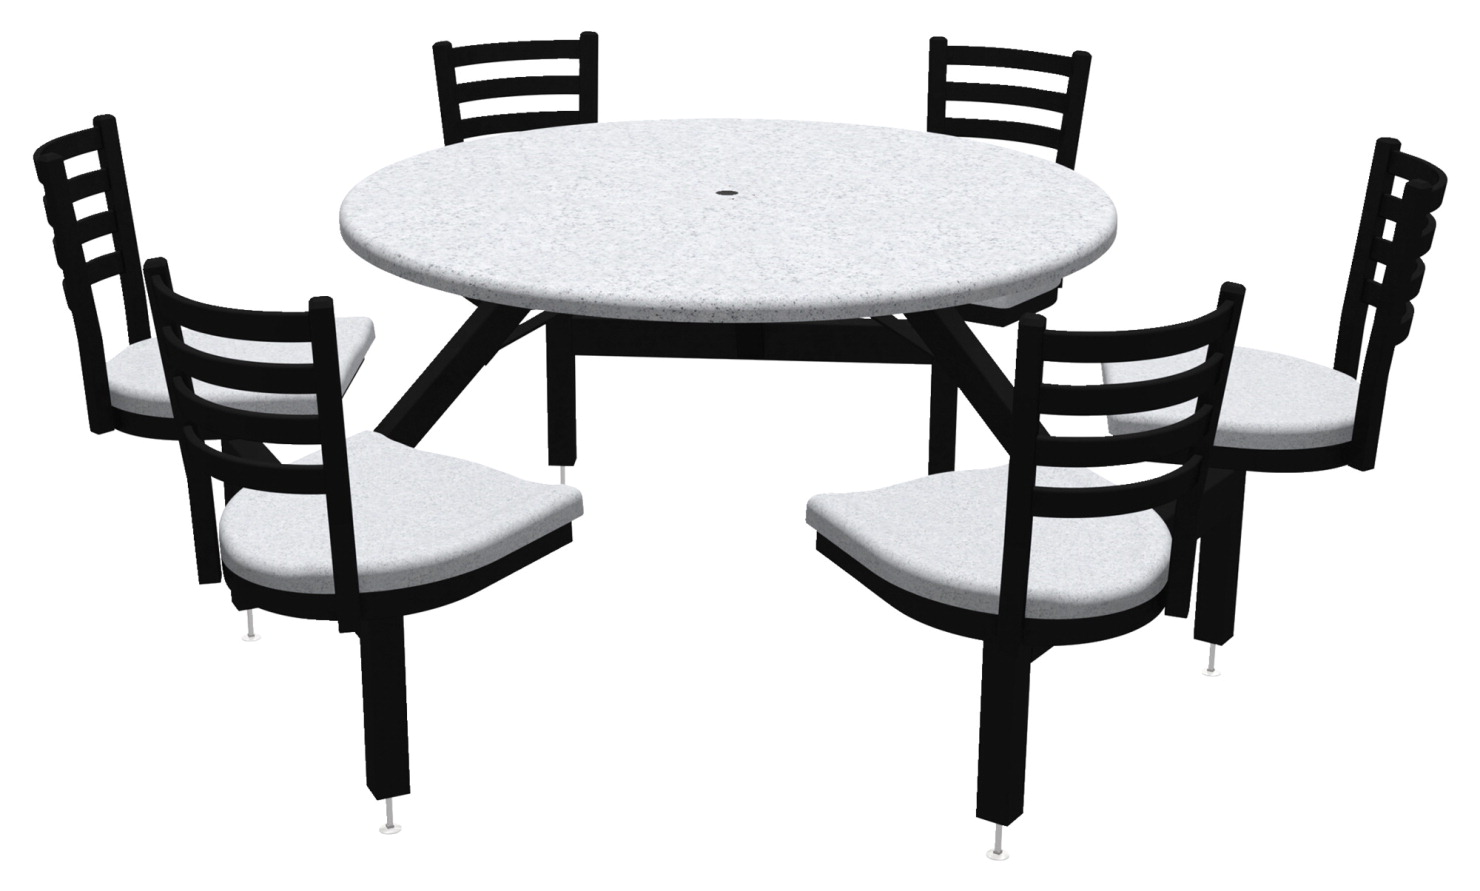 Palmer hamilton round outdoor table with glides 6 seats various options school specialty marketplace